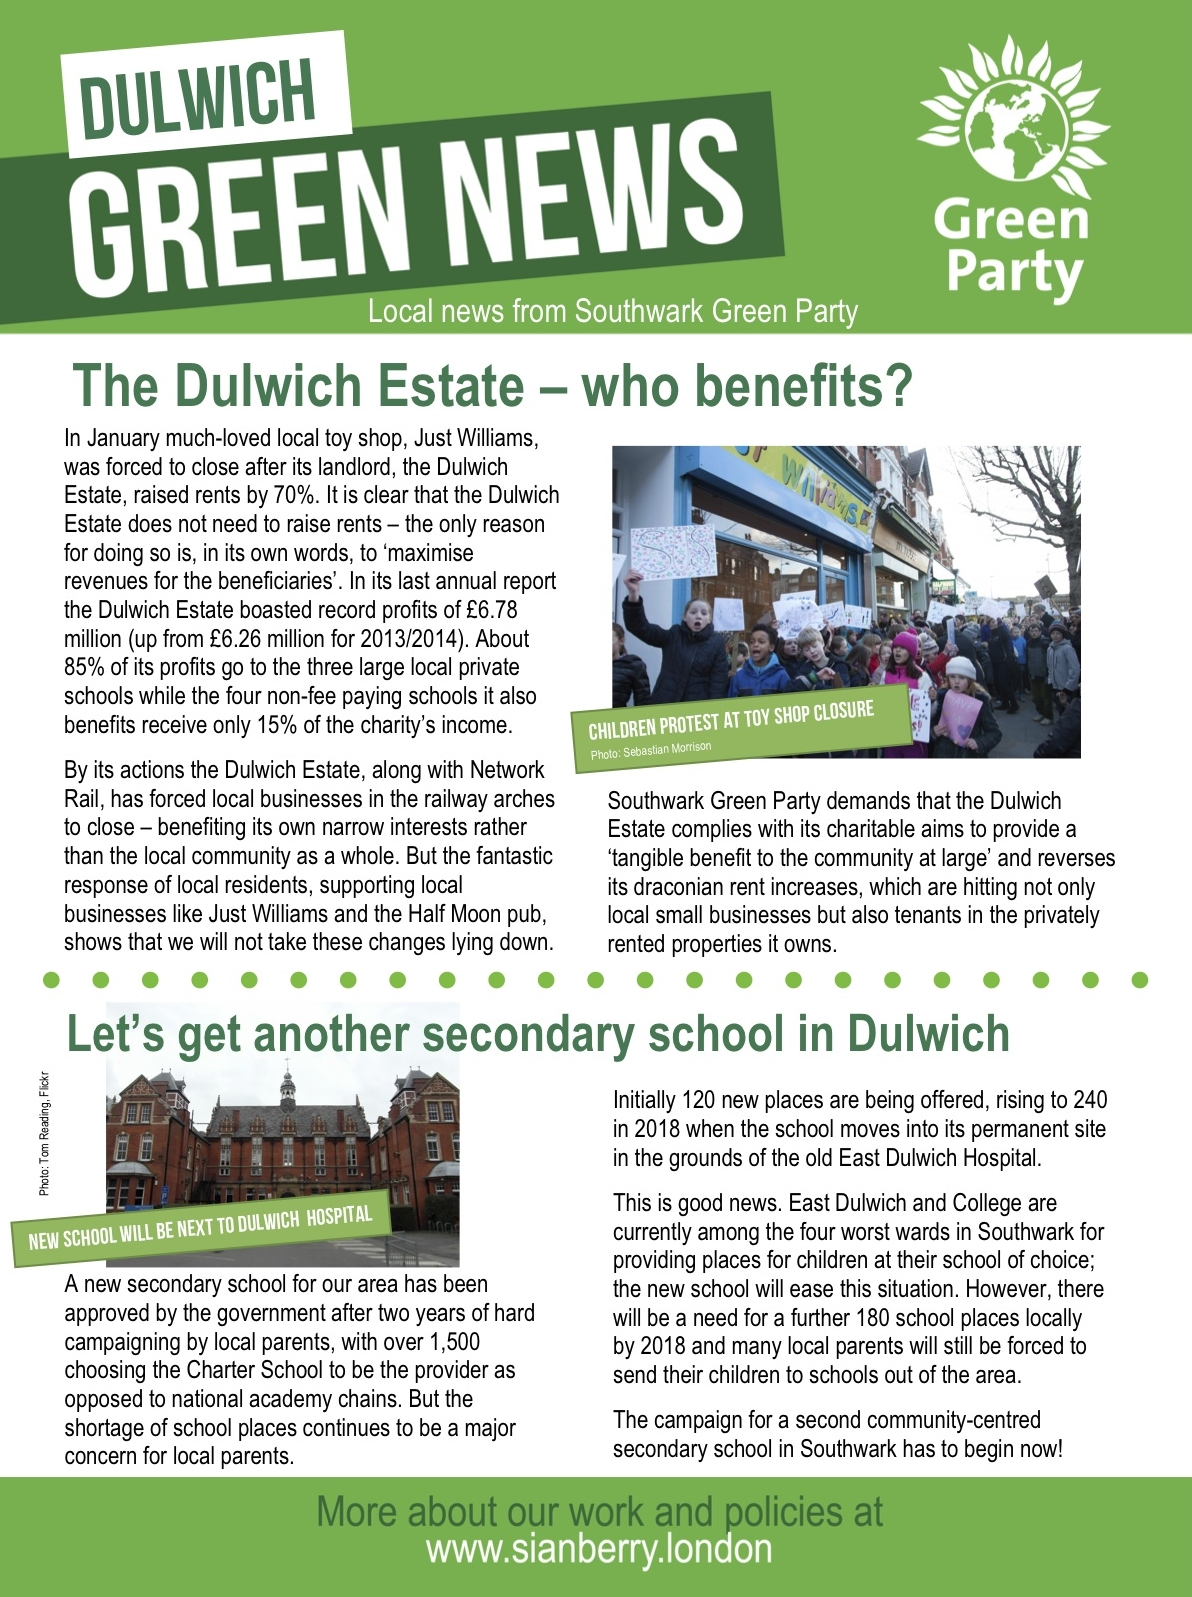 01a._Dulwich_Green_News_April_2016.jpg